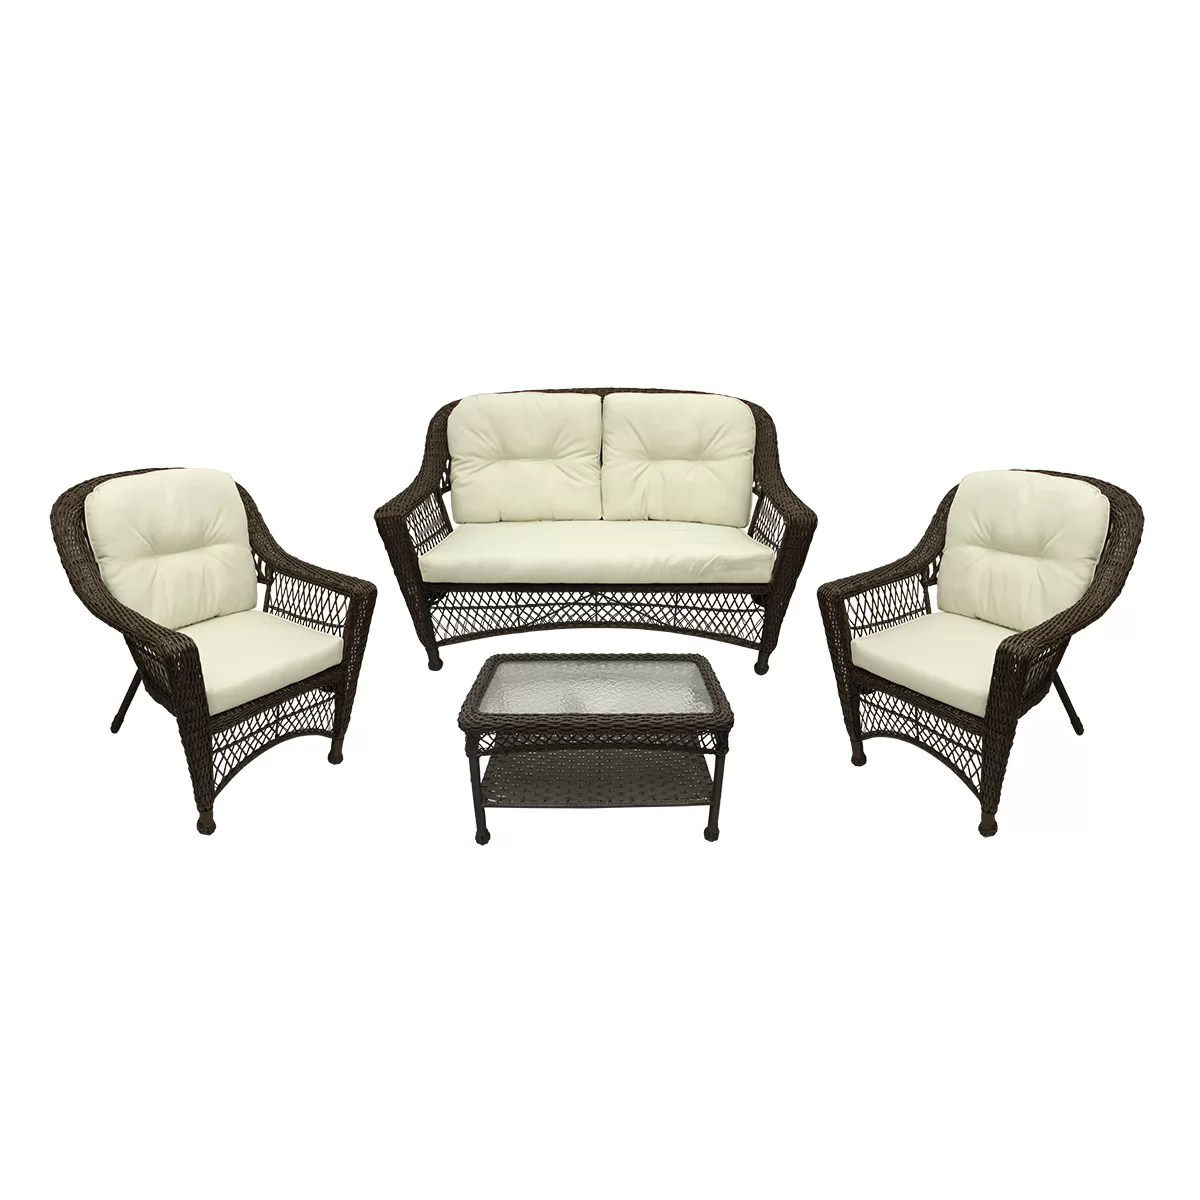 resin table and chairs set ergonomic chair new zealand northlight somerset 4 piece wicker patio loveseat